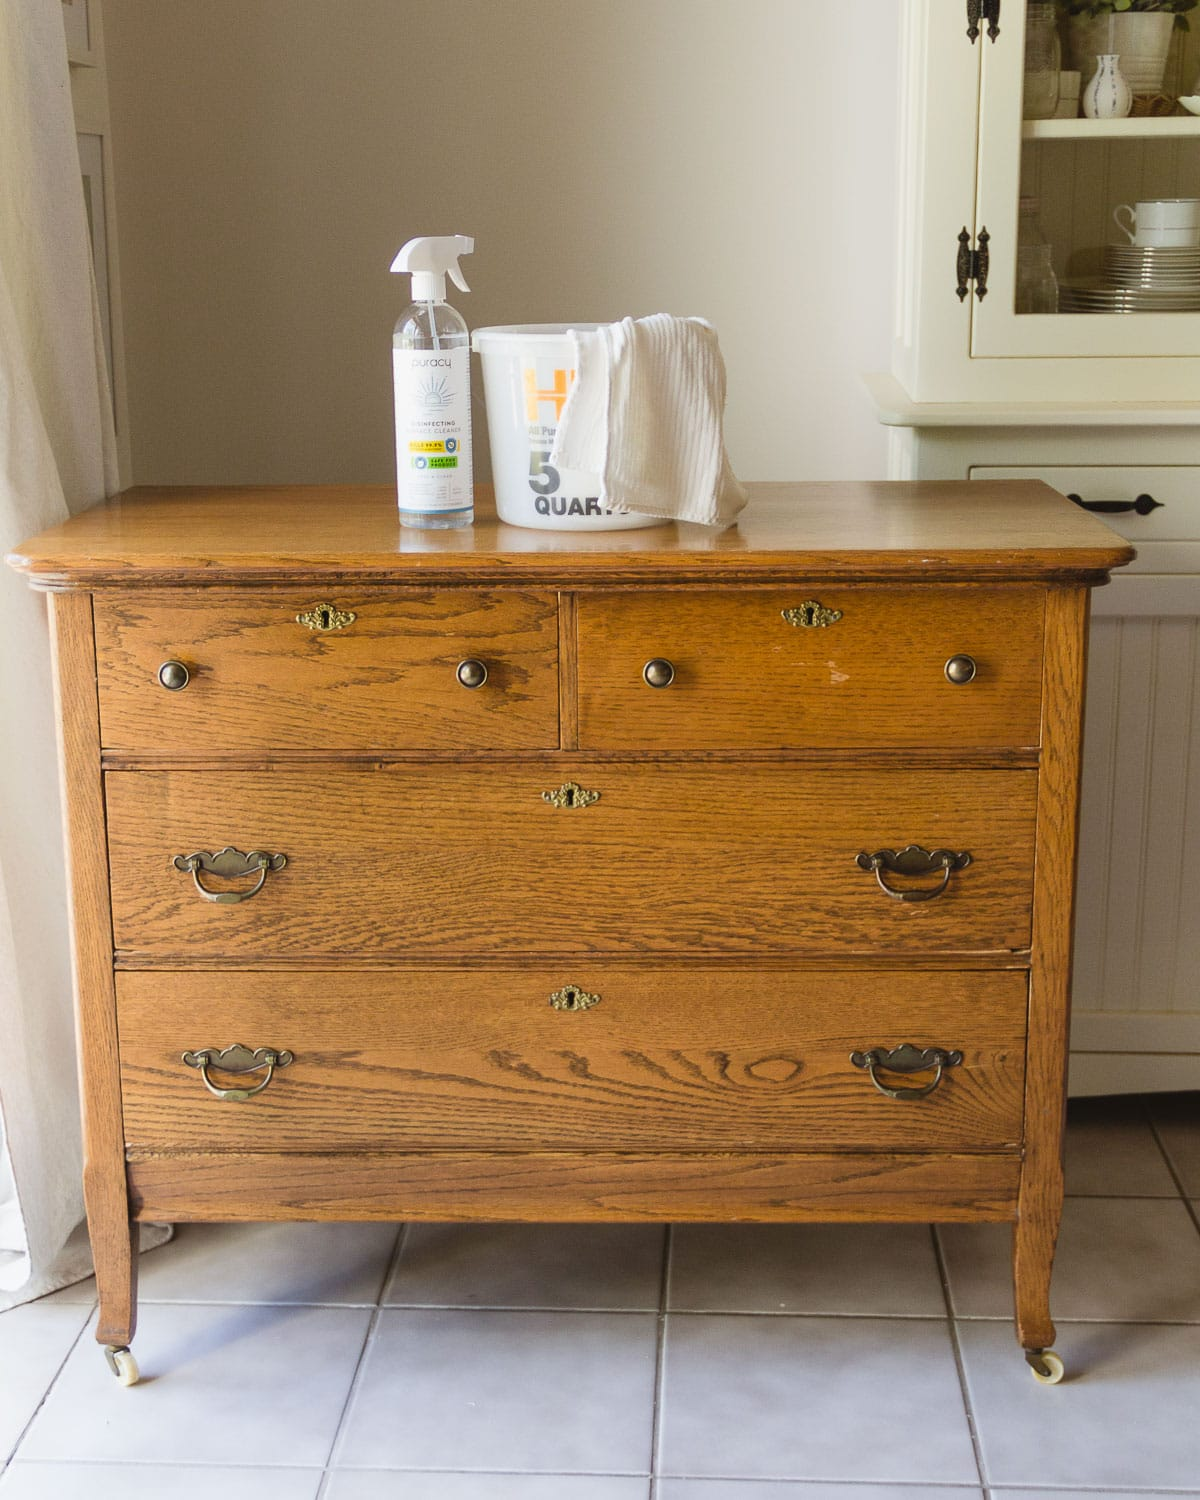 A vintage oak dresser with cleaning supplies on top of it.